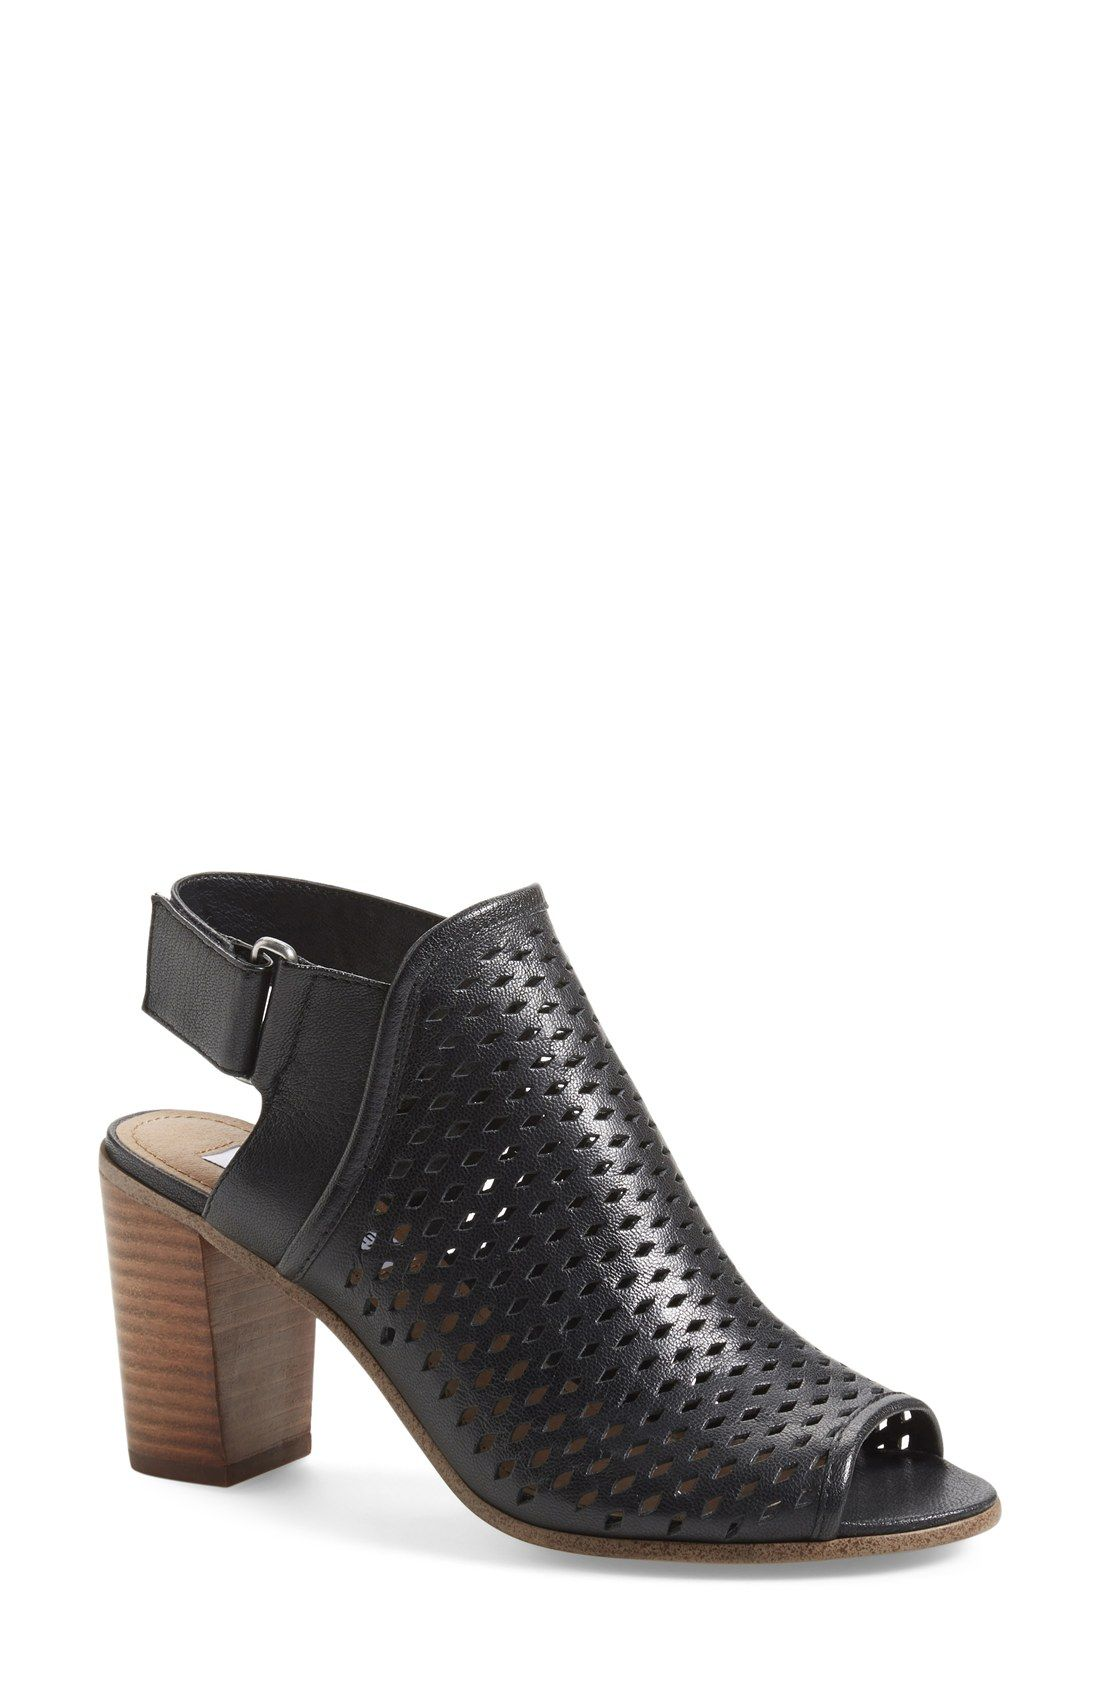 88be8eef7ad Steve Madden 'Nimbble' Perforated Slingback Sandal (Women)   Shoes ...